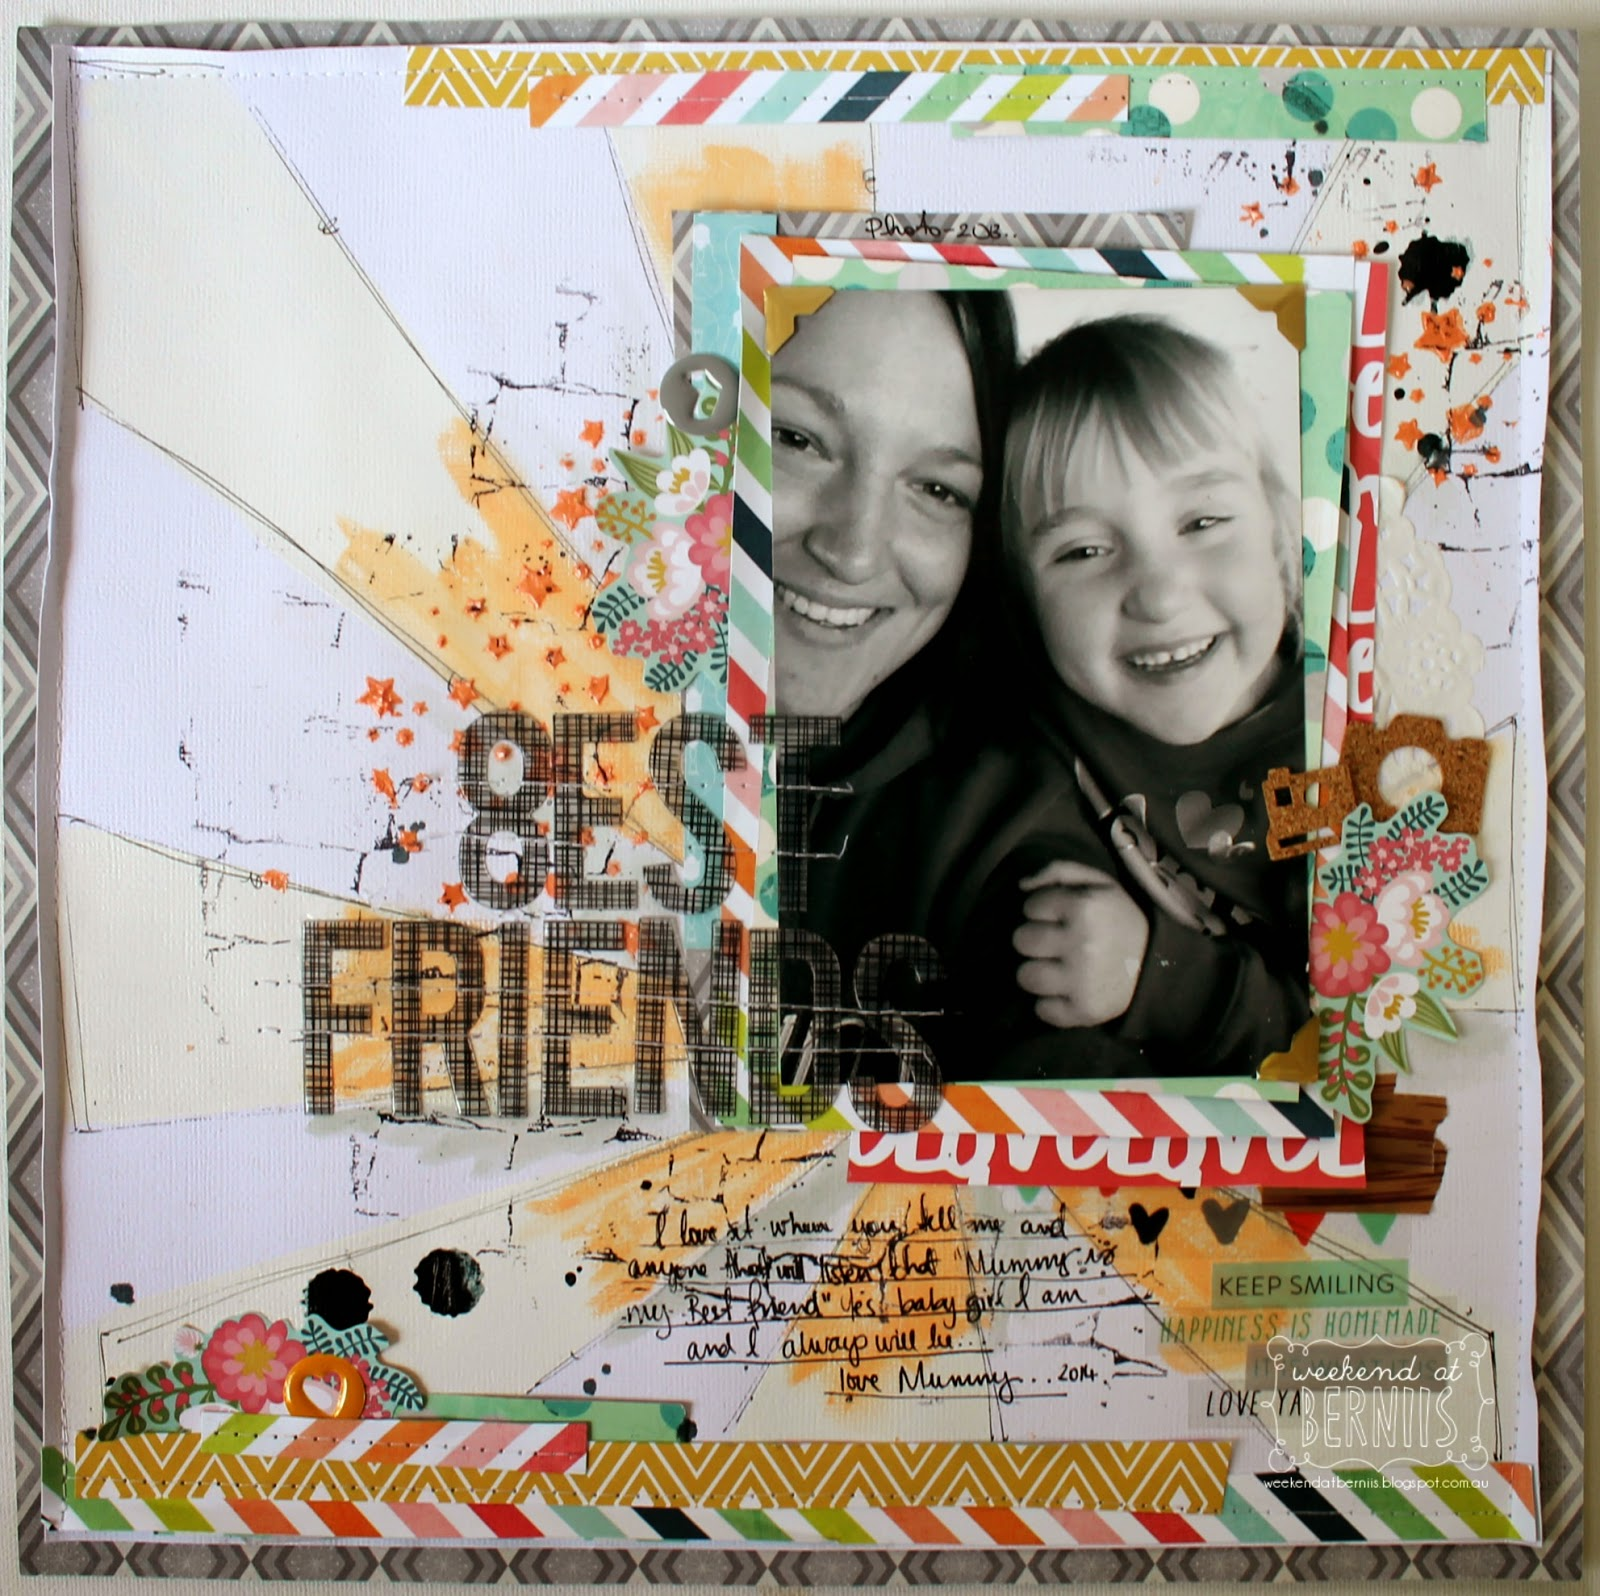 Best Friends Layout by Bernii Miller for Scrappy Canary Kits using the Sunshine & Lollipops kit.